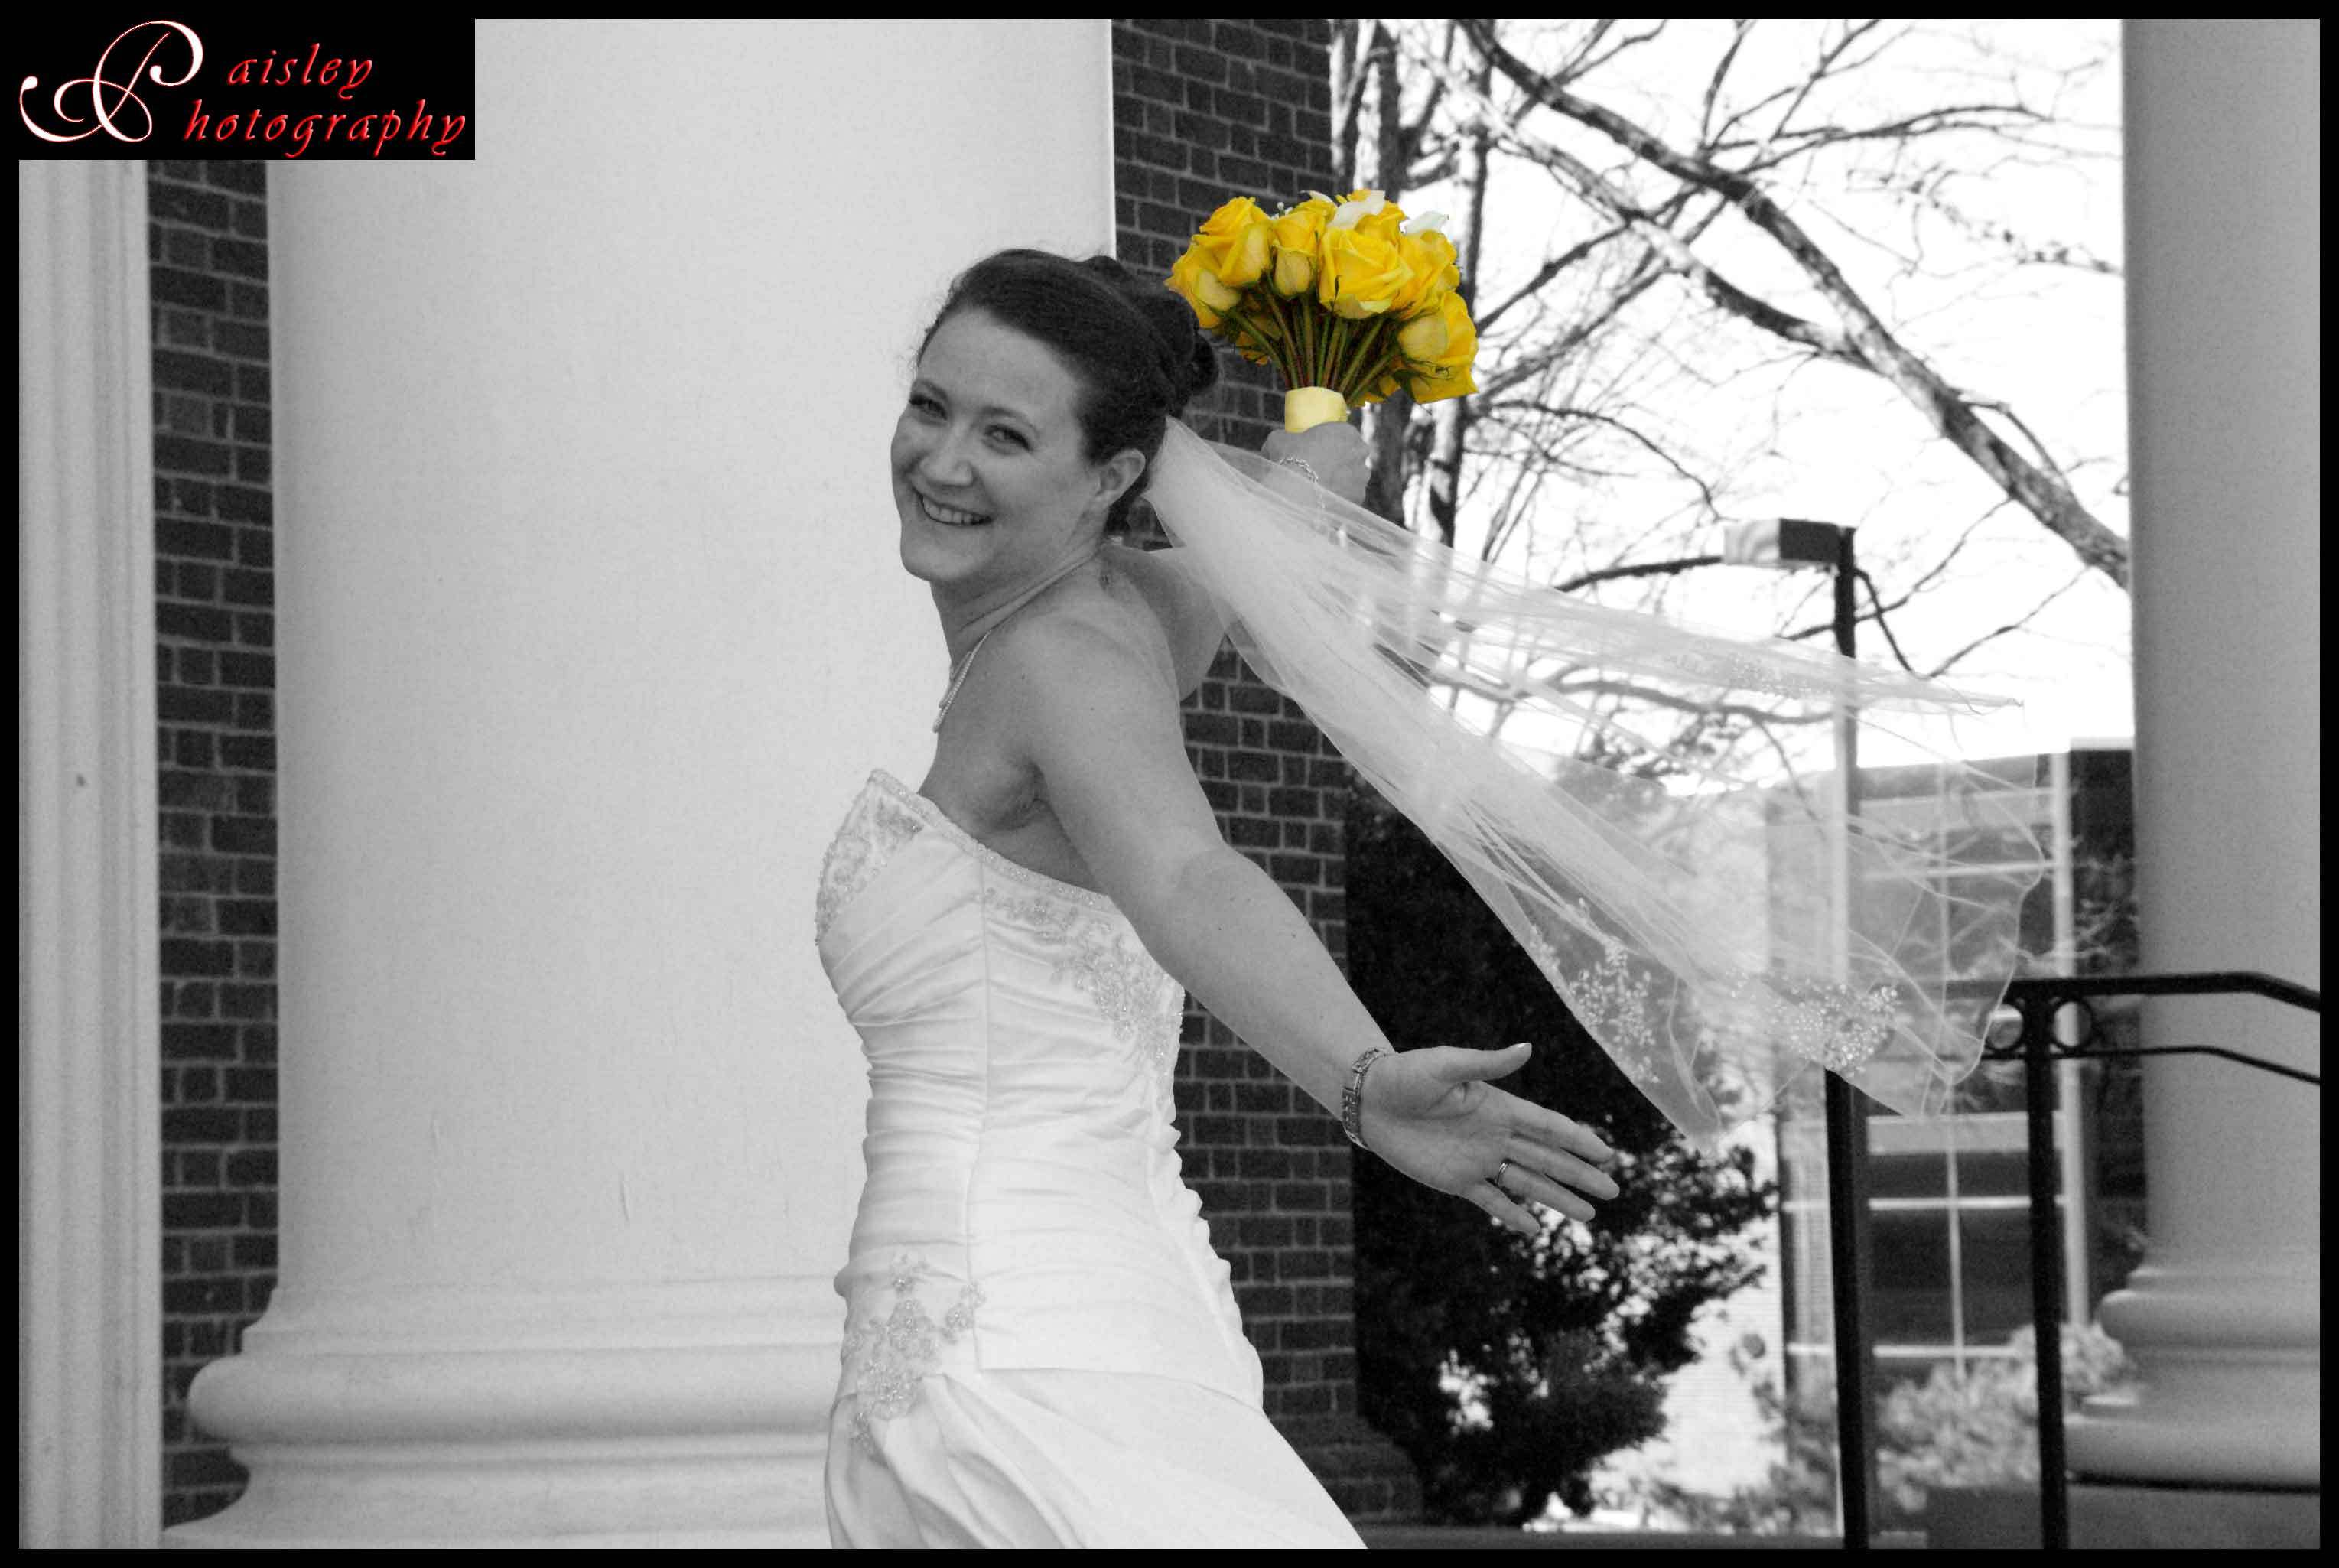 yellow, Bride, Paisley photography, Colorization